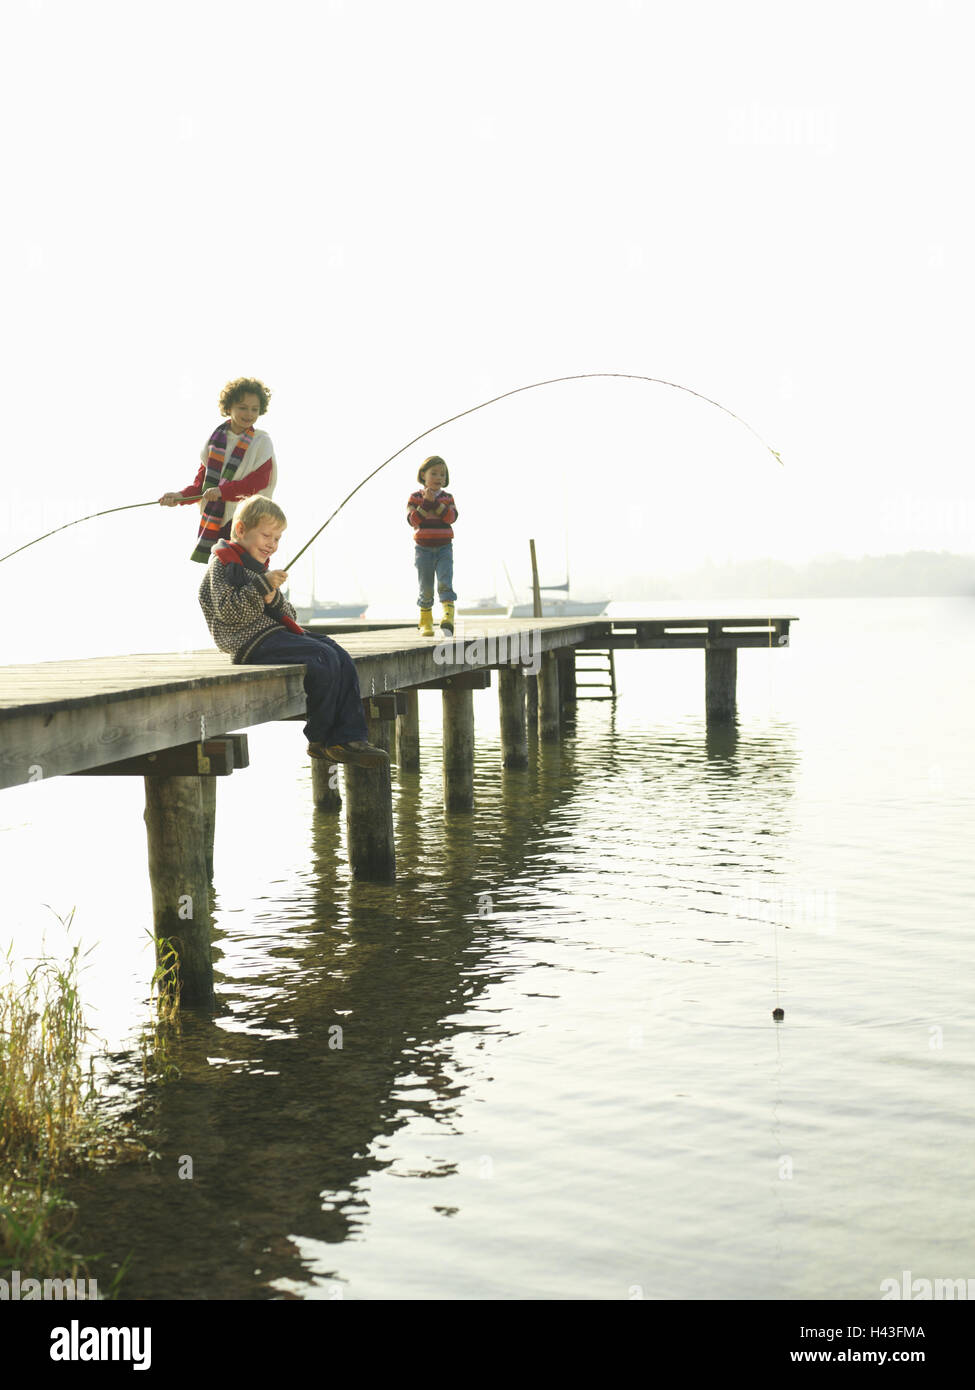 Lakes, bridge, children, girls, stand, boy, sit, fish, wait, autumn, waters, wooden jetty, water, leisure time, - Stock Image